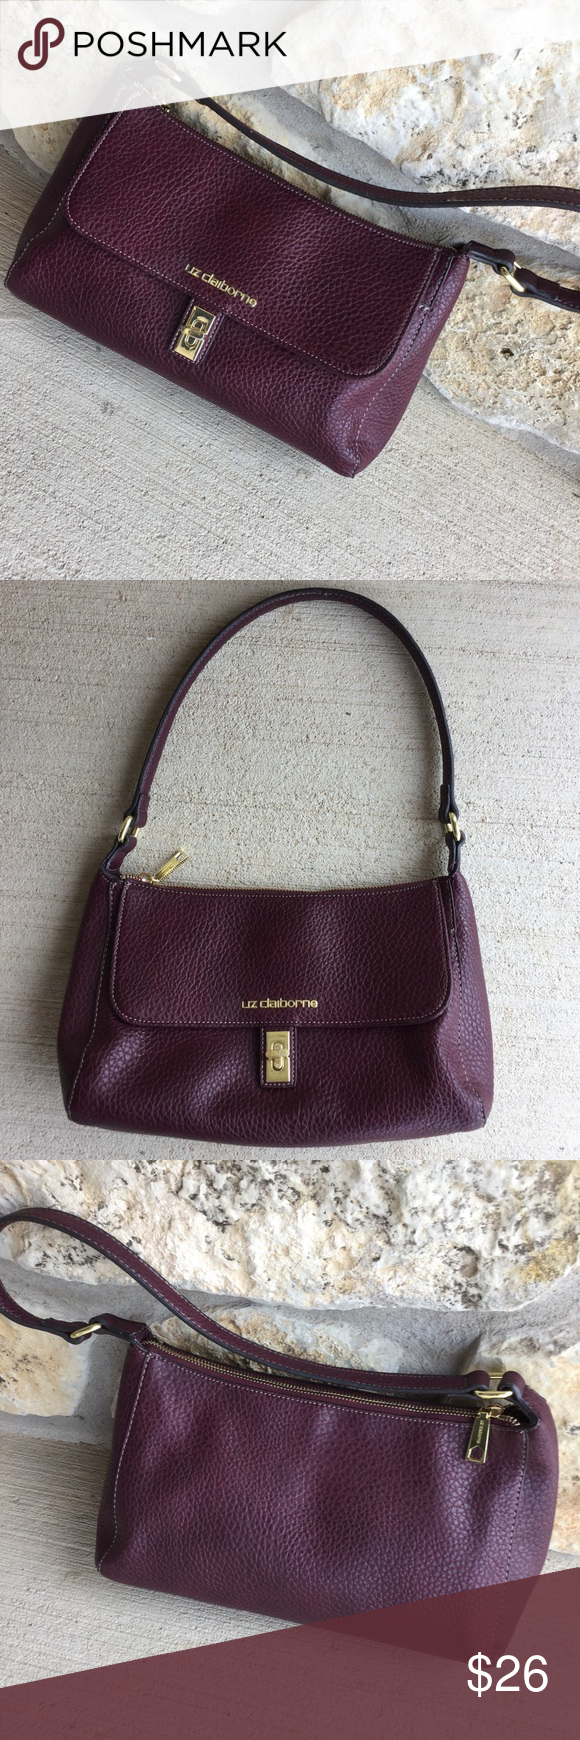 "Liz Claiborne Leather Handbag, Maroon/Burgundy This baguette style purse is made of beautiful pebbled leather with gold clasp, lettering, etc.  In very good condition, outside and inside zippers work, inside is clean, and there are no scuffs or scratches in the leather. Measures 12""x7""x4"". A great find! Bundle with my other items for a discount if you save on shipping. I ship quick! Liz Claiborne Bags"